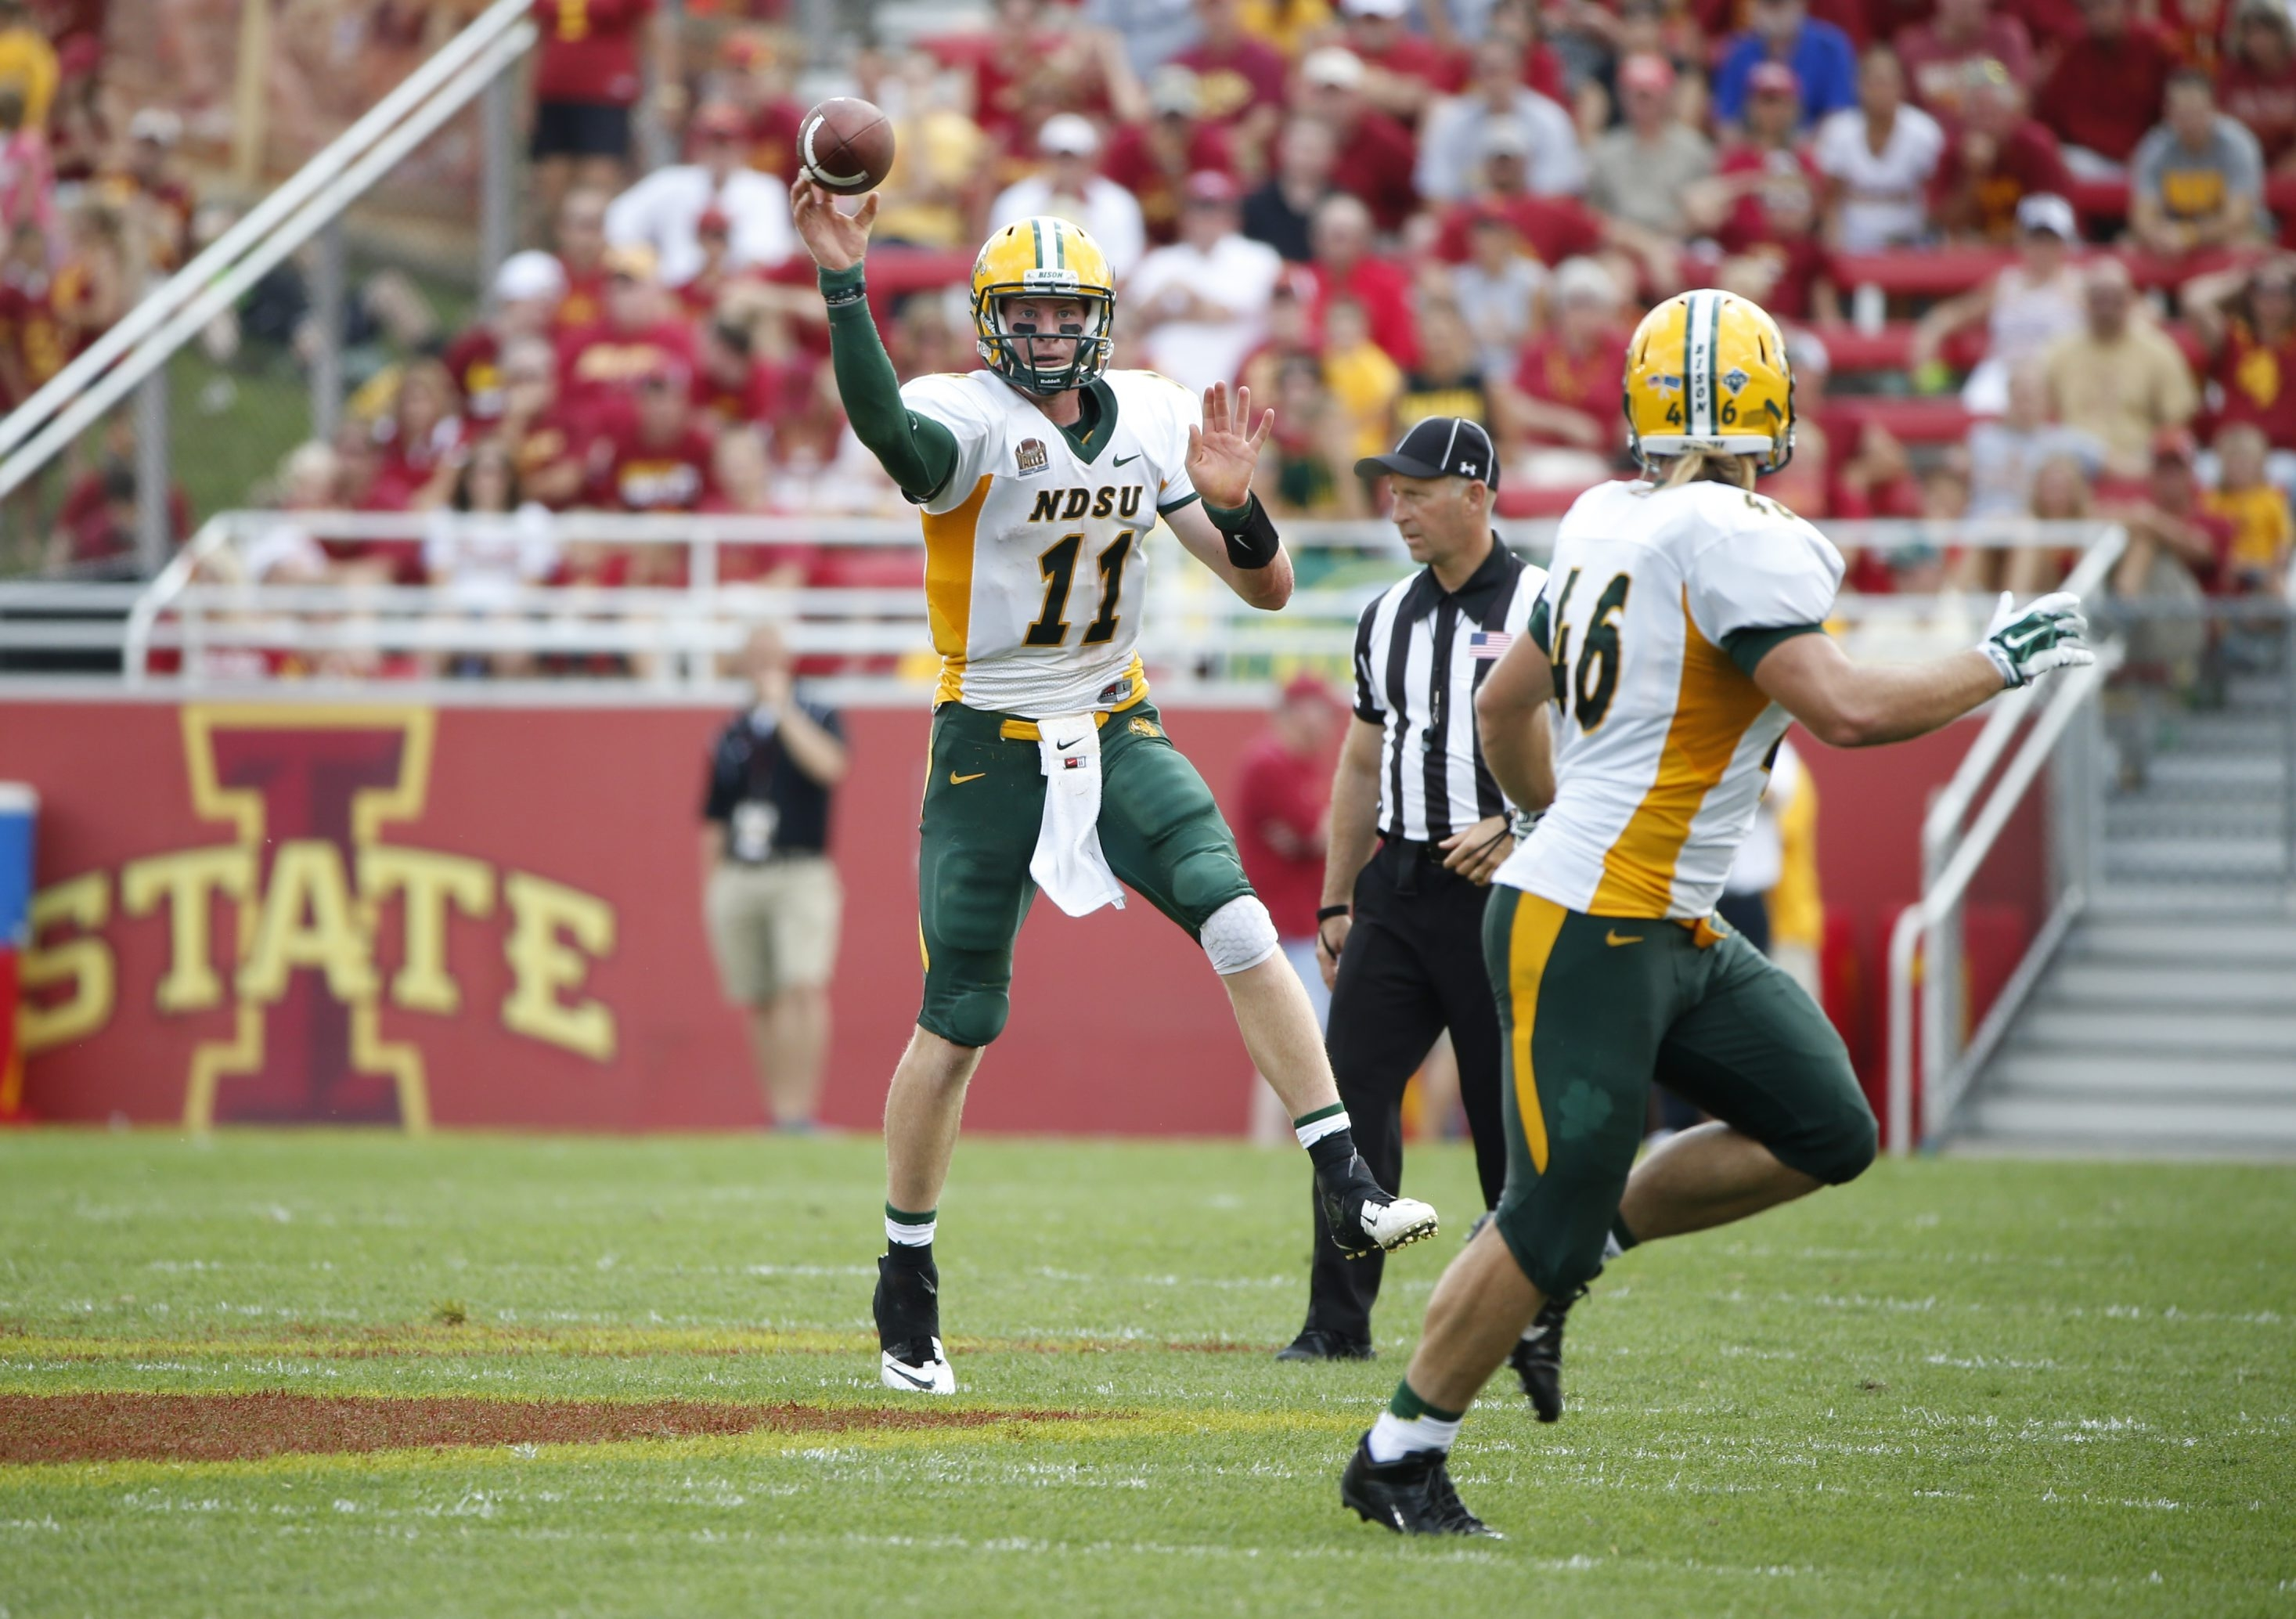 AMES, IA - AUGUST 30: Quarterback Carson Wentz #11 of the North Dakota State Bison passes to teammate fullback Andrew Bonnet #46 of the North Dakota State Bison in the second half of play against the Iowa State Cyclones at Jack Trice Stadium on August 30, 2014 in Ames, Iowa. North Dakota State defeated Iowa State 34-14. (Photo by David Purdy/Getty Images)